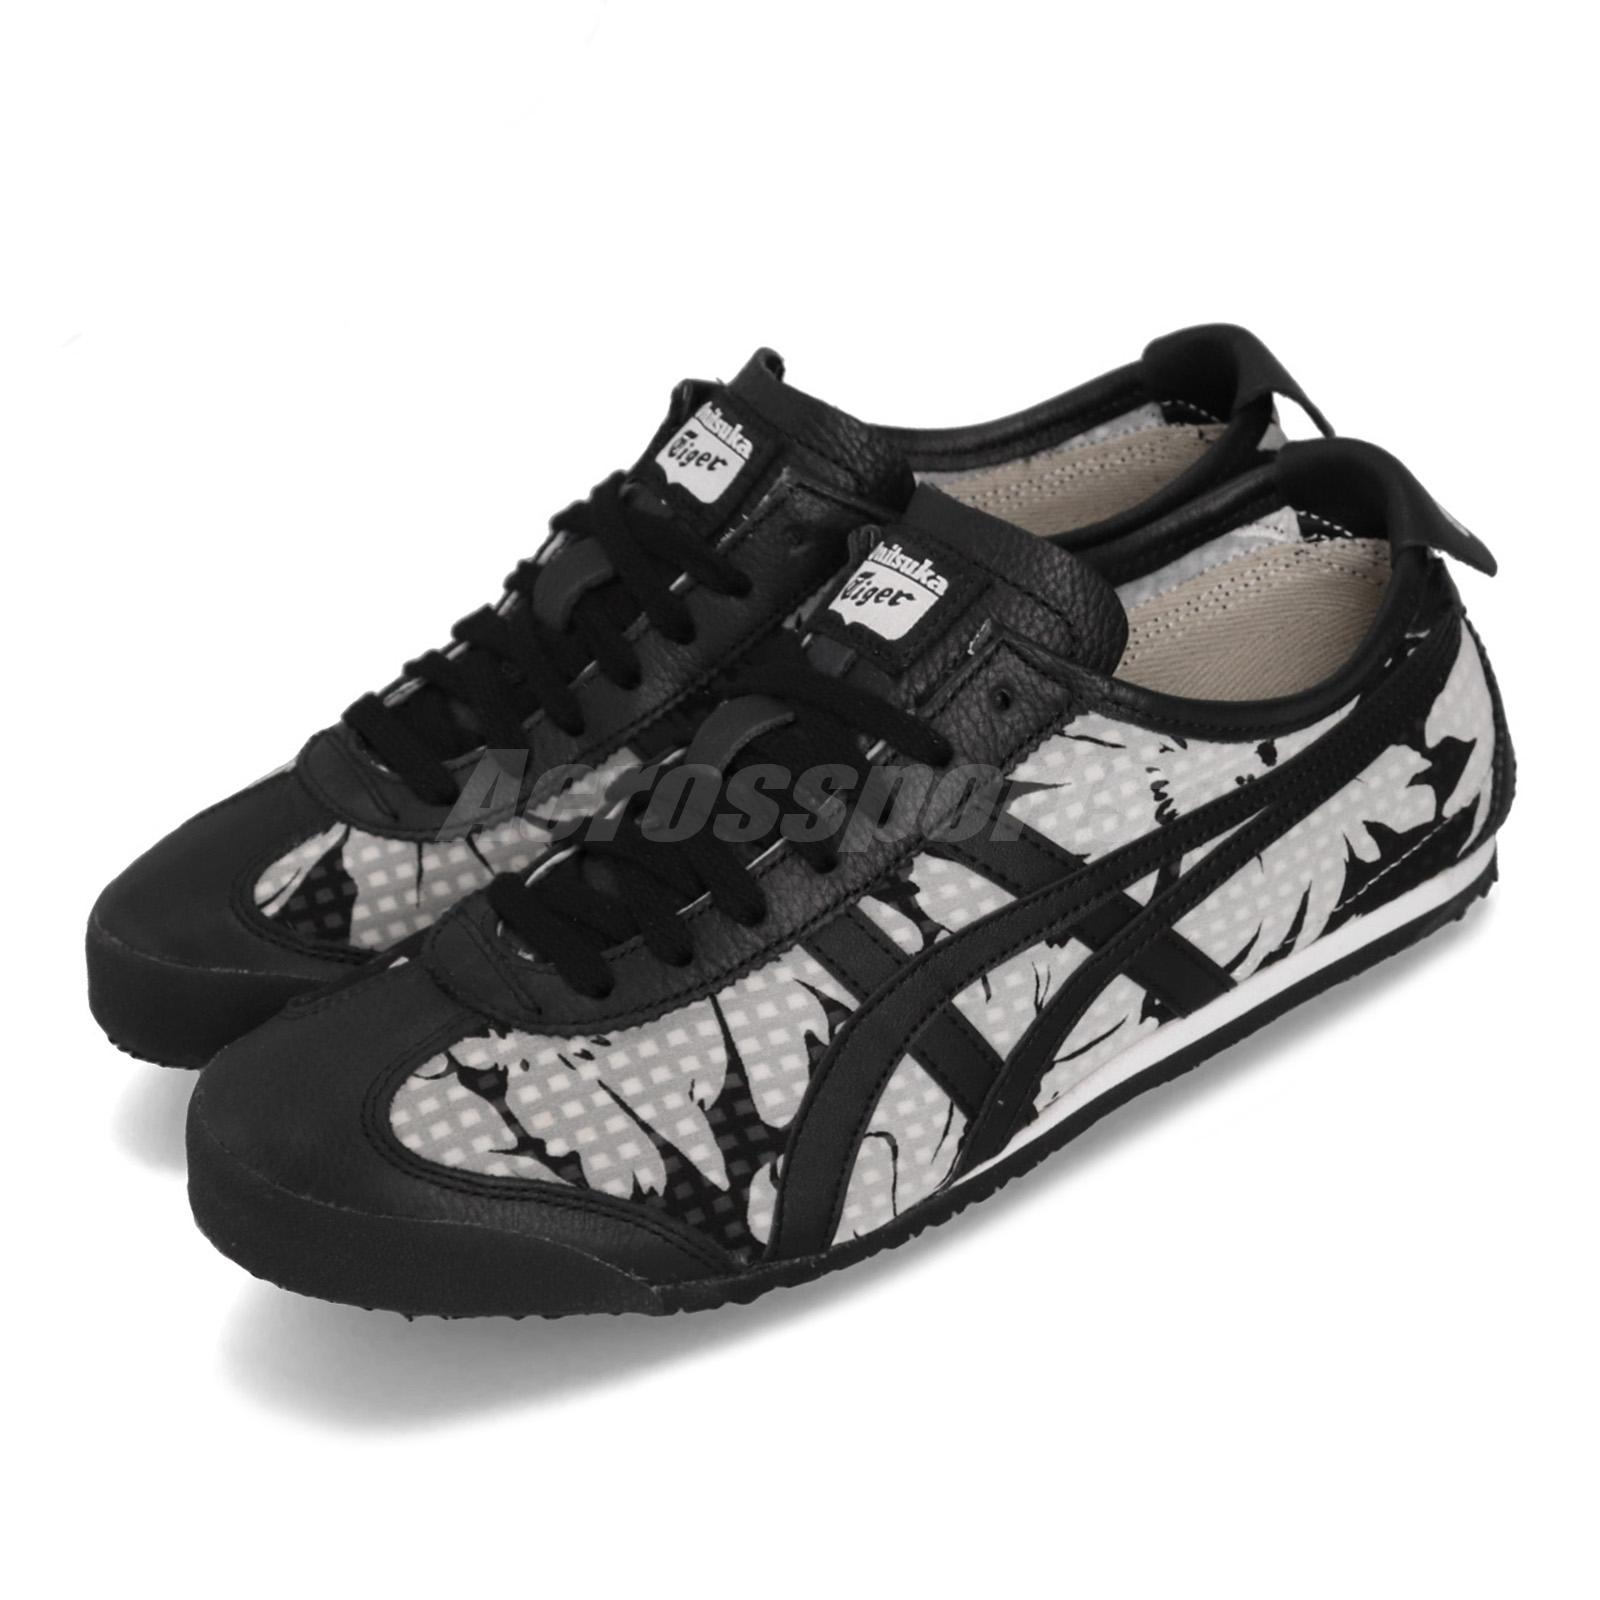 best service 897fe dd214 Details about Asics Onitsuka Tiger Mexico 66 Black White Grey Women Running  Shoes D860N-9090